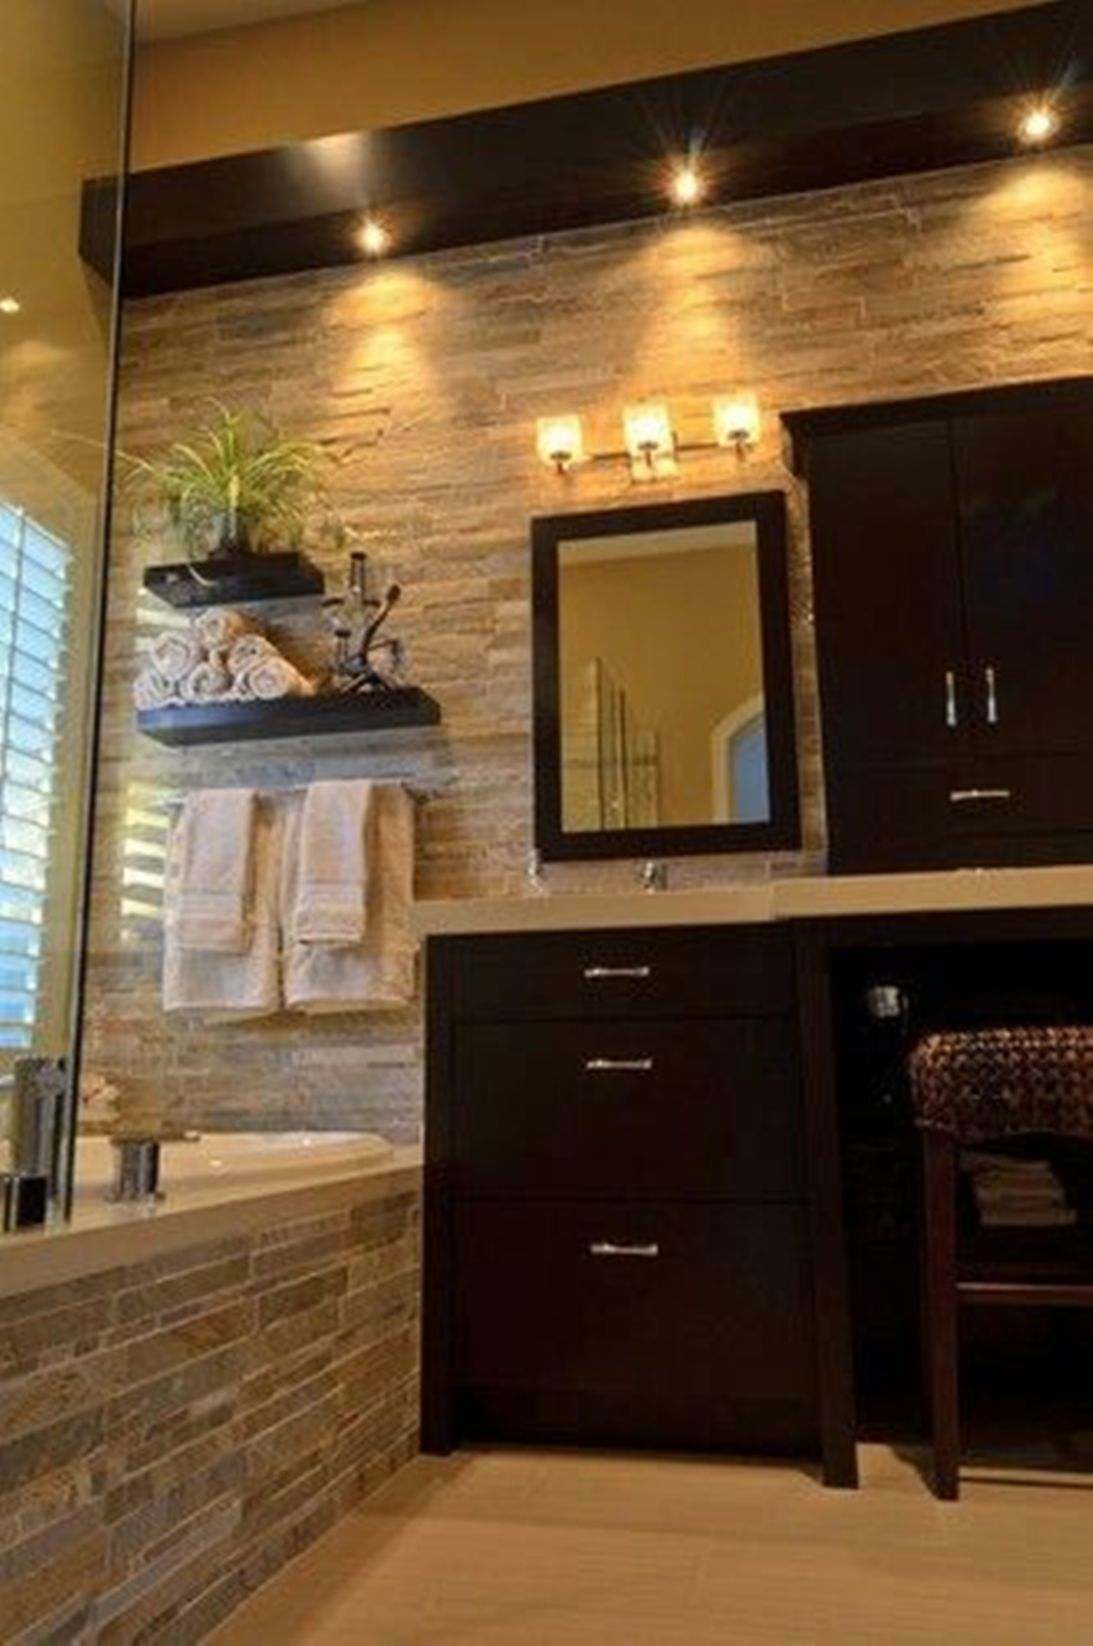 Stone Bathroom Vanity : cool-bathroom-with-natural-stone-bathroom-tiles-and-dark-wood-vanity ...